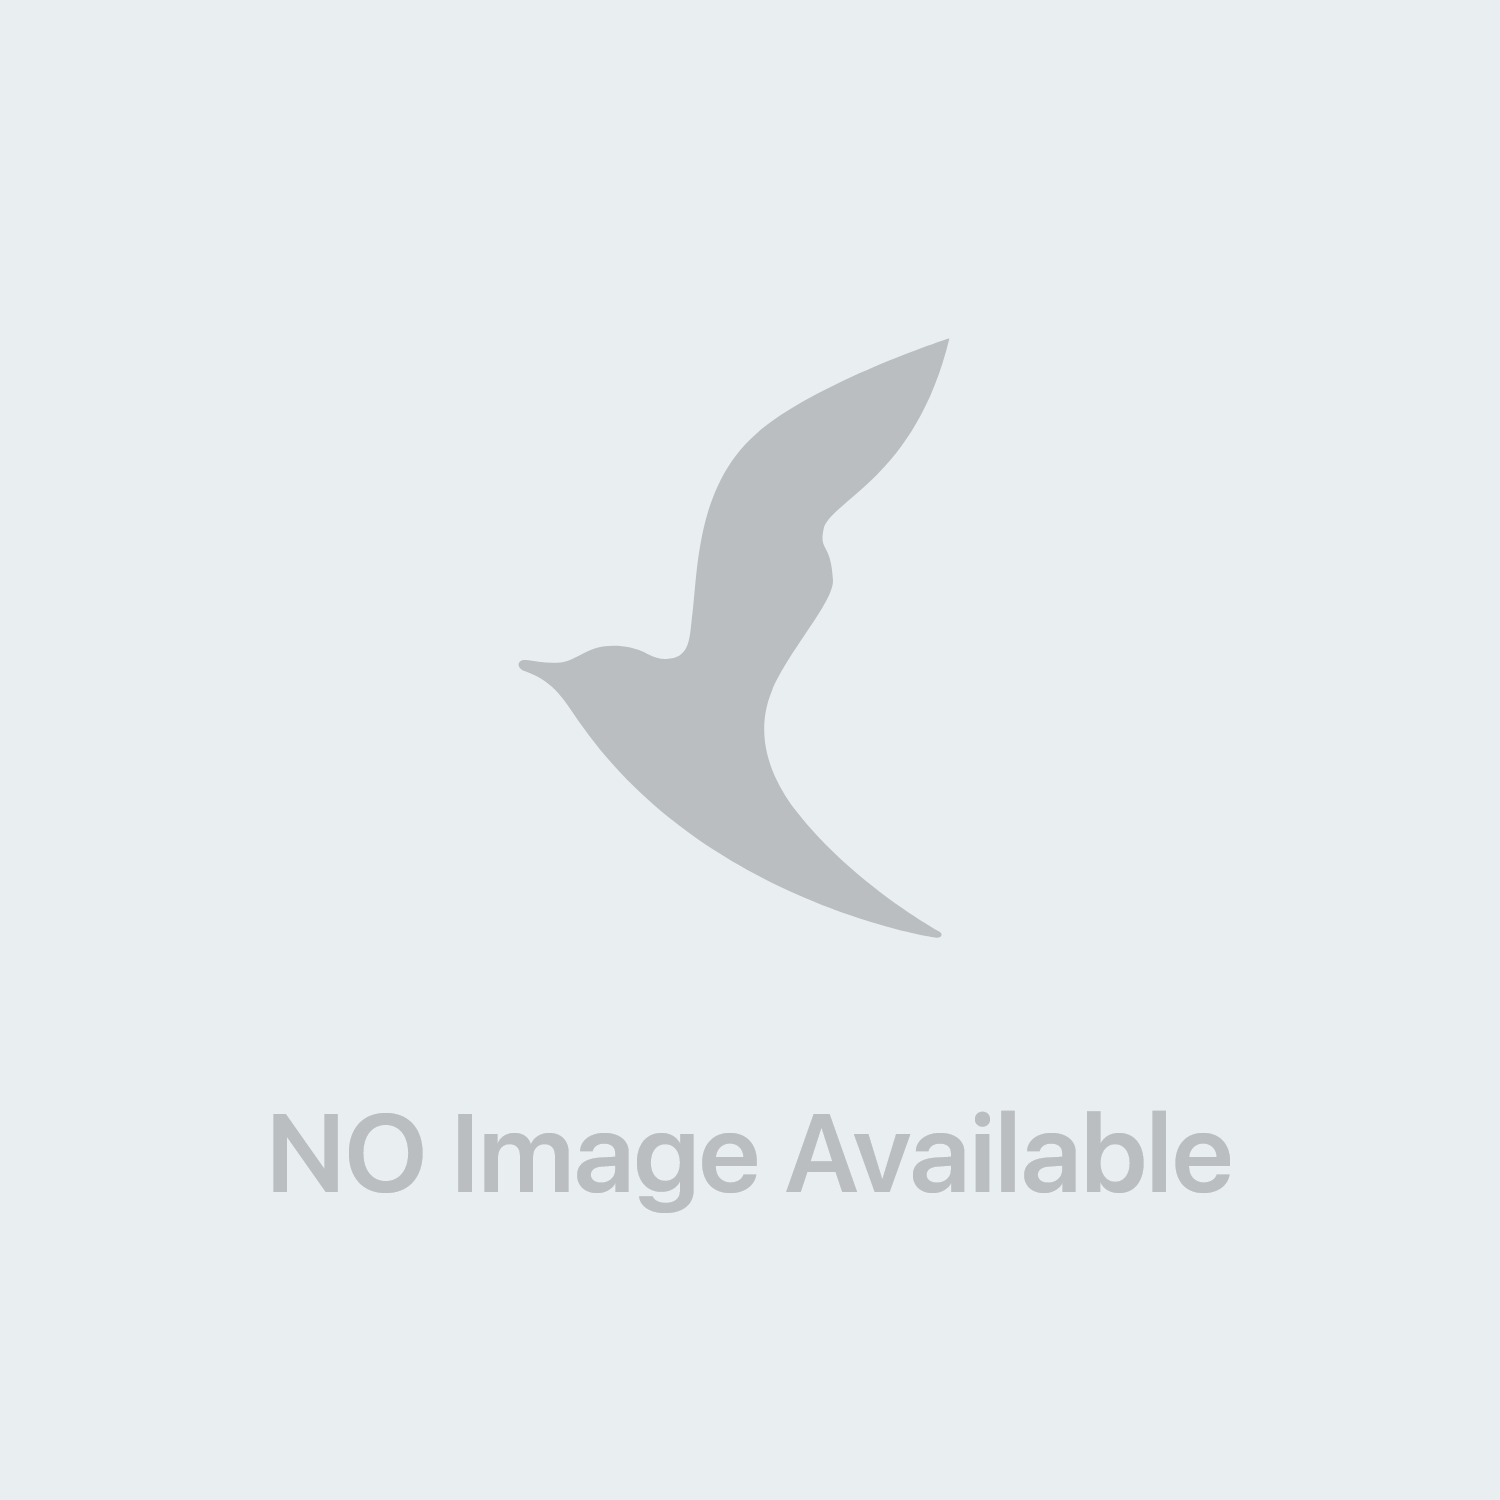 Rilastil Color Cream Dorata Crema Colorata Viso 30 Ml